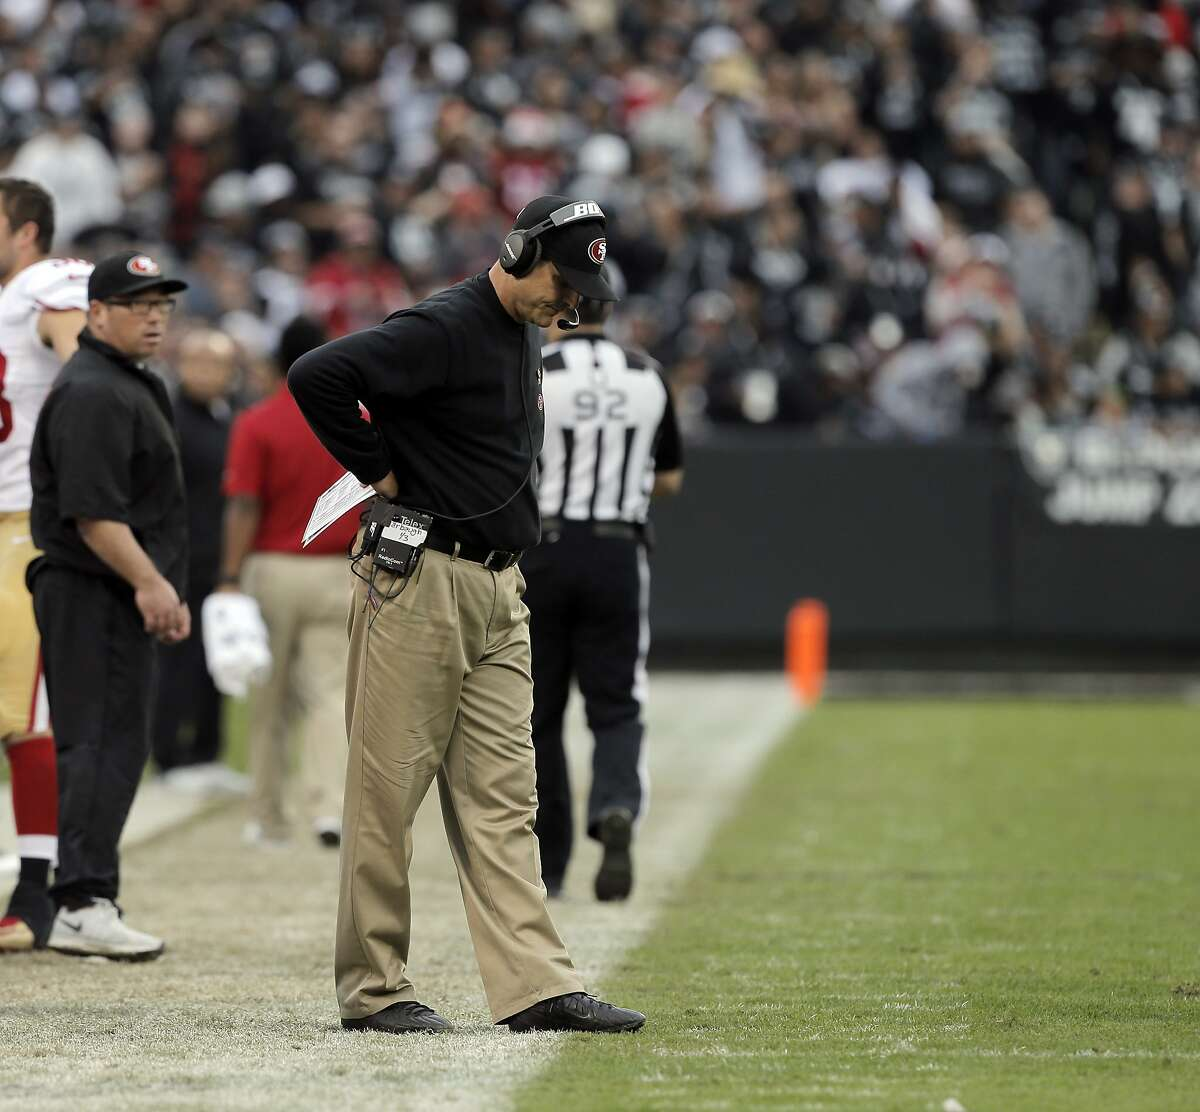 Jim Harbaugh walks along the sidelines during the second half of the Raiders game against the 49ers at O.co Coliseum in Oakland, Calif., on Sunday December 7, 2014.